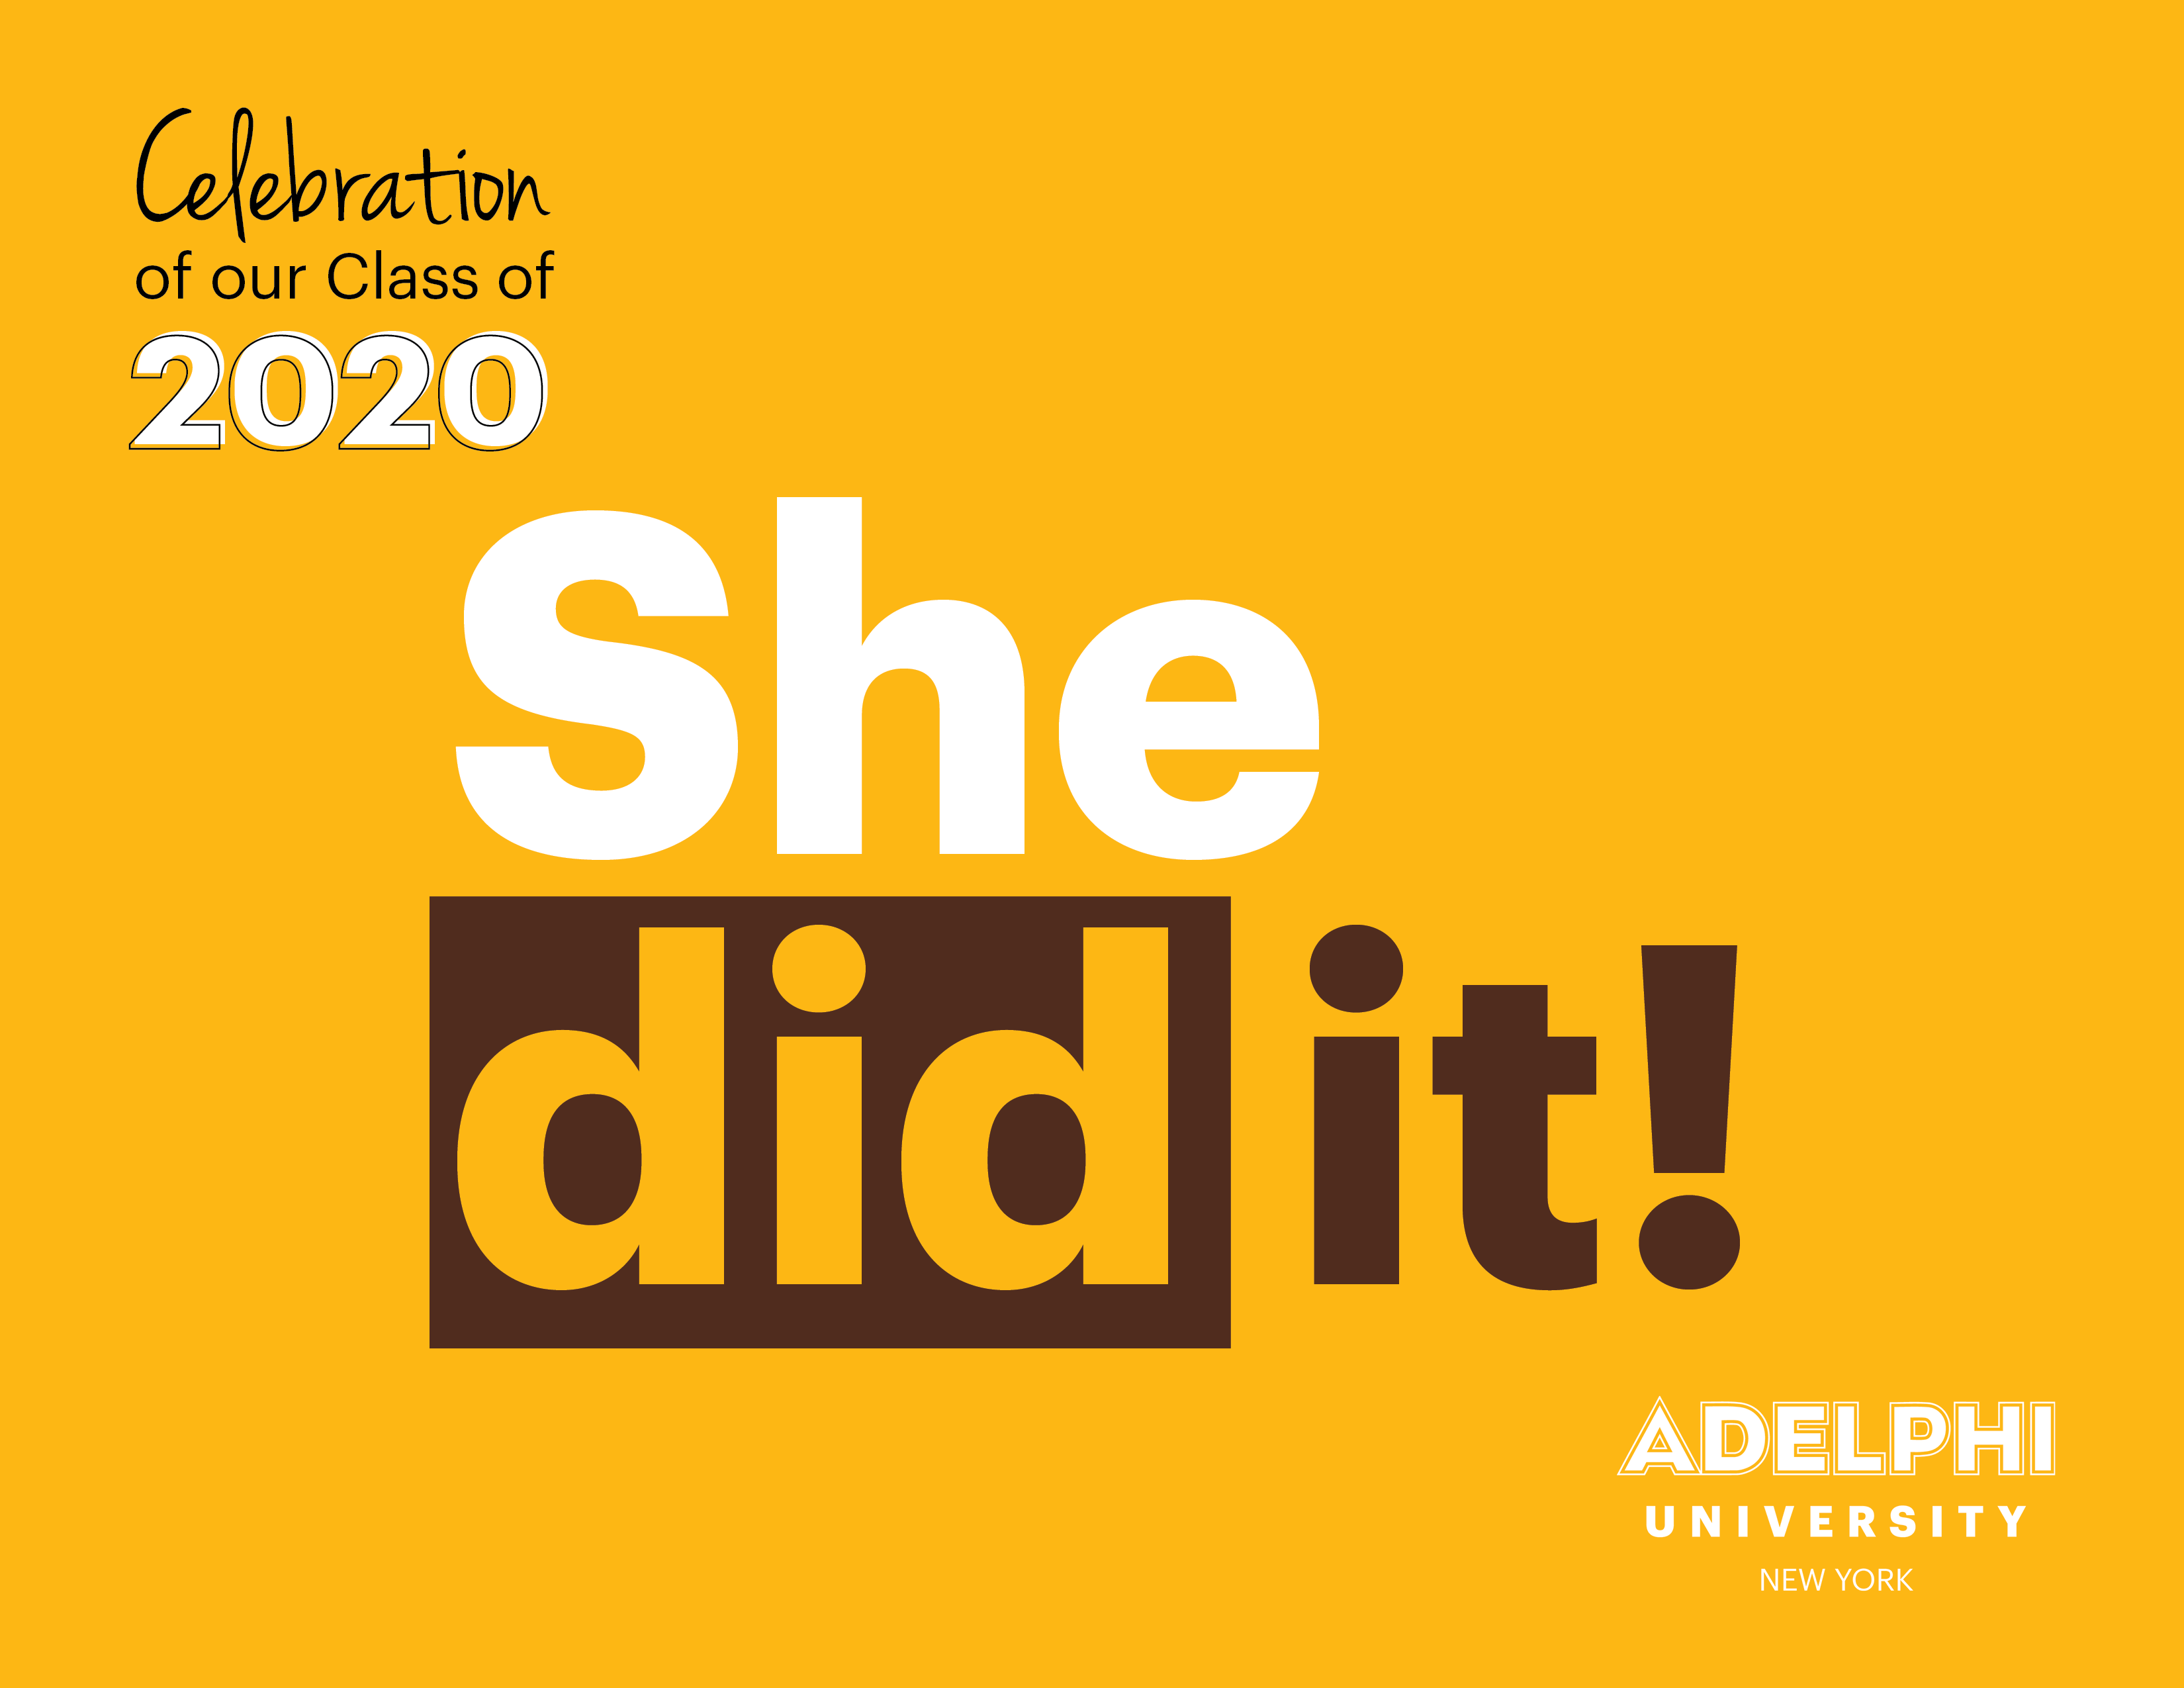 Class of 2020 - She did it!